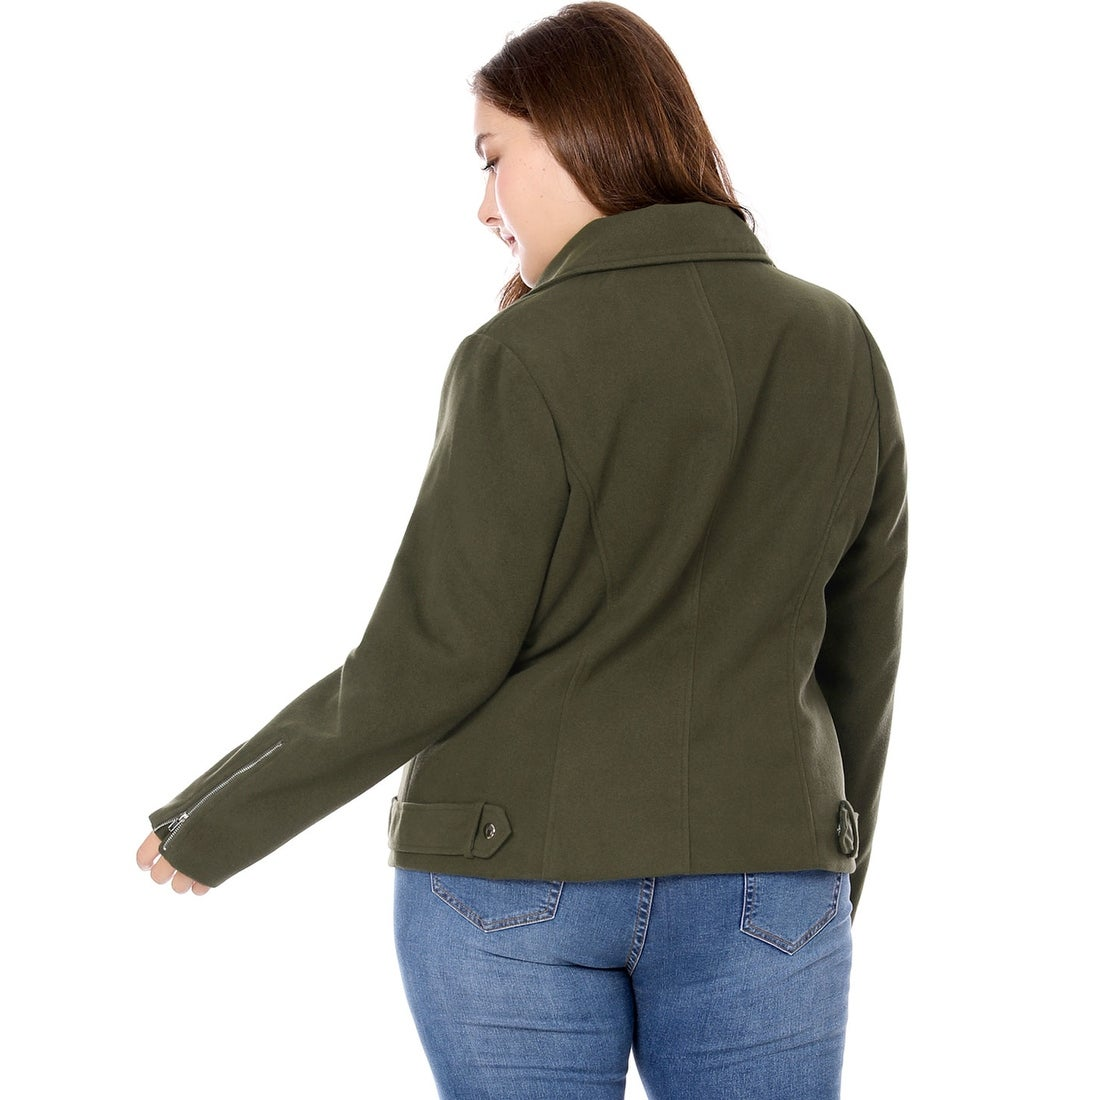 98597d4b355 Shop Allegra K Women Plus Size Convertible Collar Inclined Zip Closure Moto  Jacket - Green - On Sale - Free Shipping Today - Overstock - 21160777